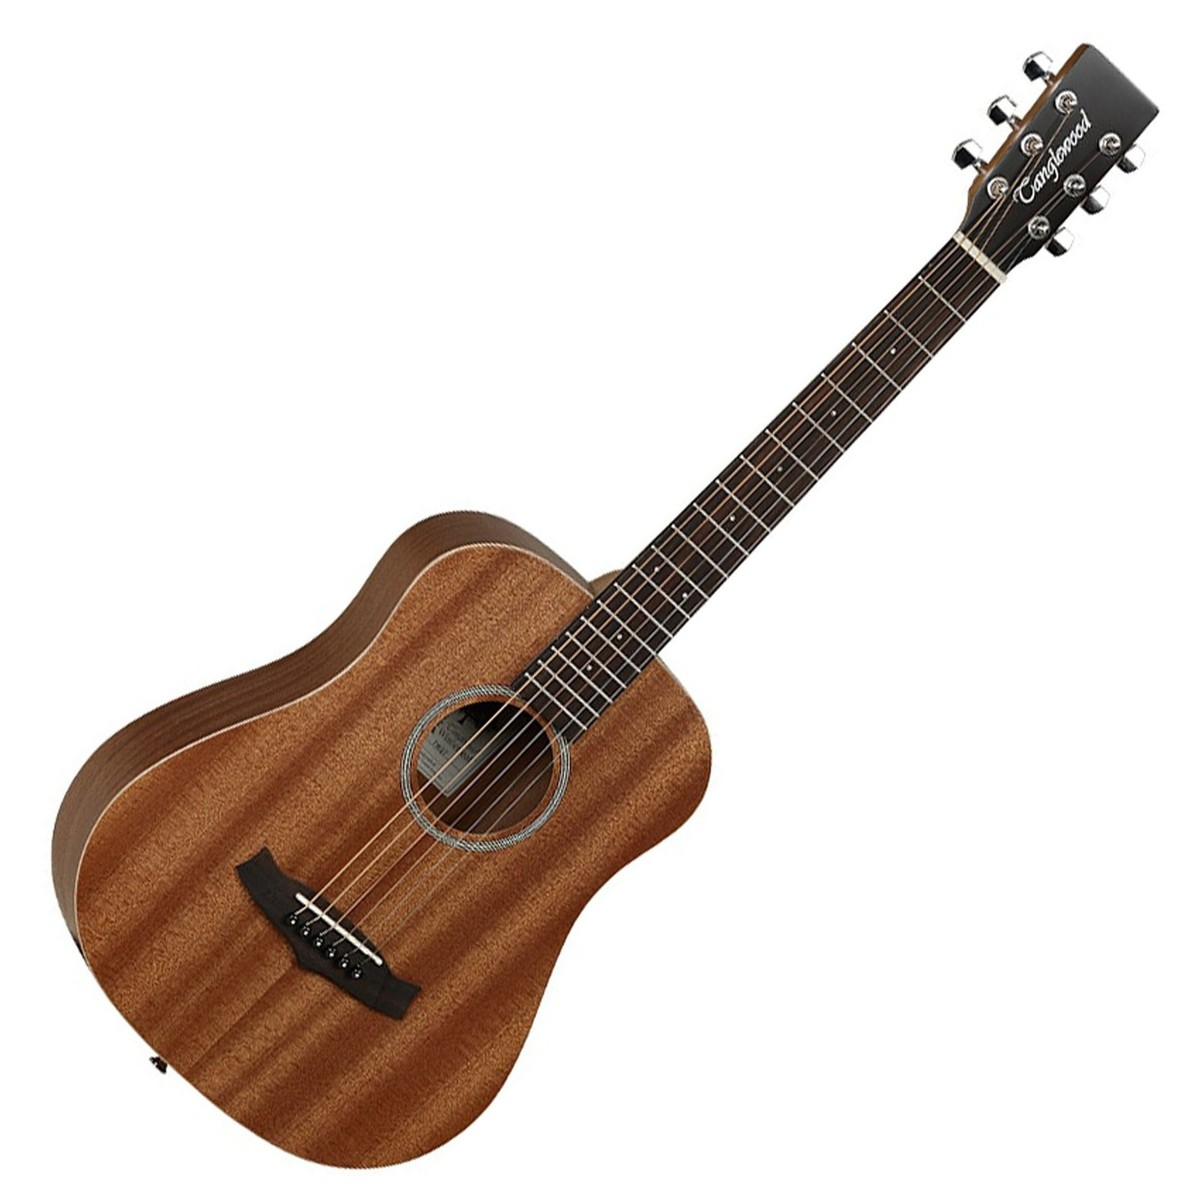 Tanglewood Winterleaf TW2 T Traveller, Junior guitar (Naturlig satin)